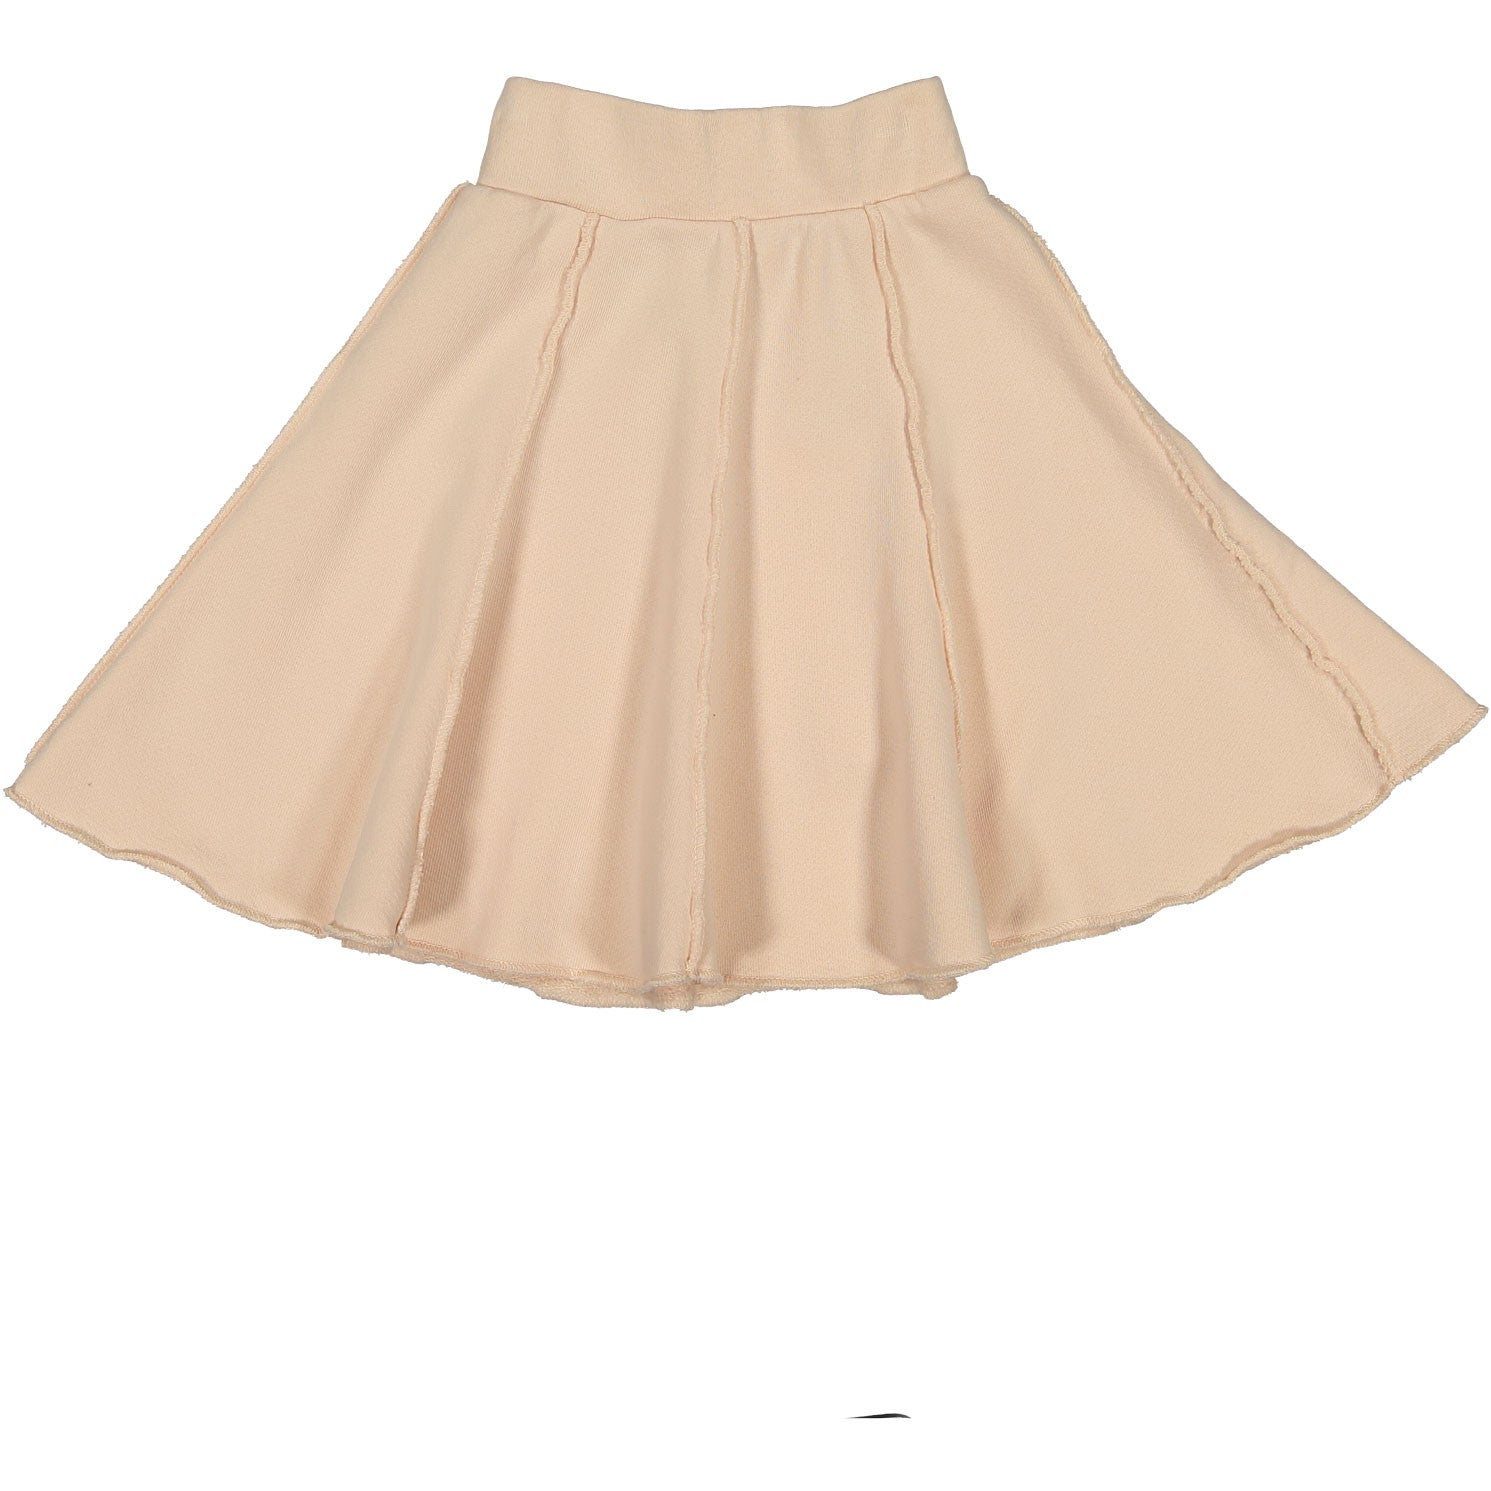 Mimobee Peach Twirly Panel Skirt - Ladida